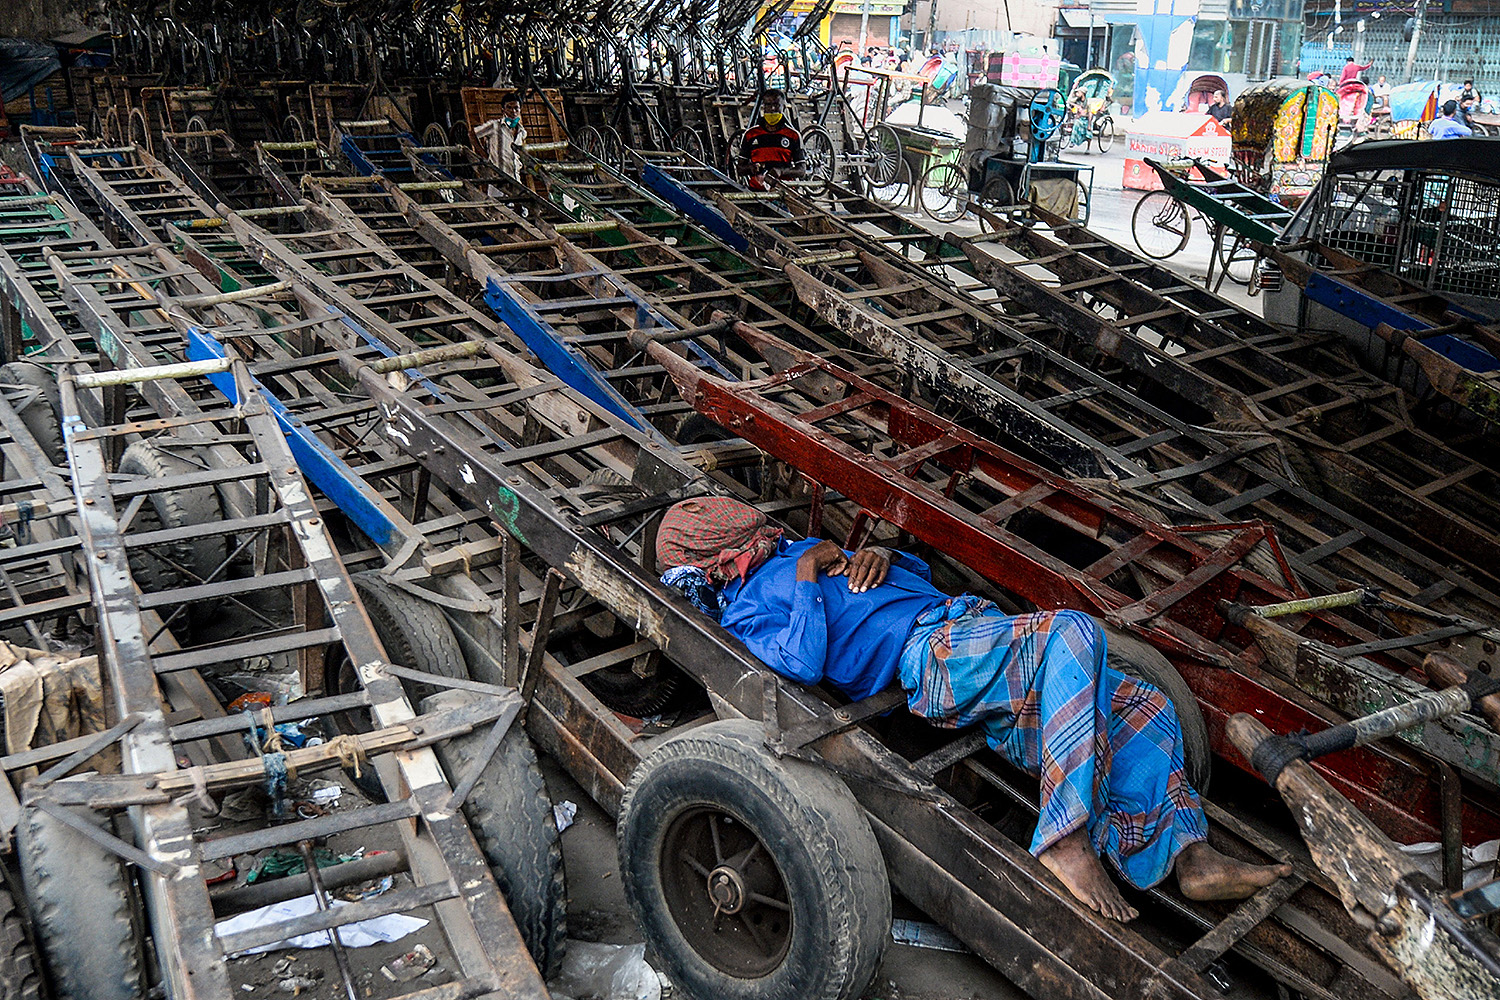 A worker sleeps on a pushcart in Dhaka, Bangladesh, on May 1, International Workers' Day. MUNIR UZ ZAMAN/AFP via Getty Images